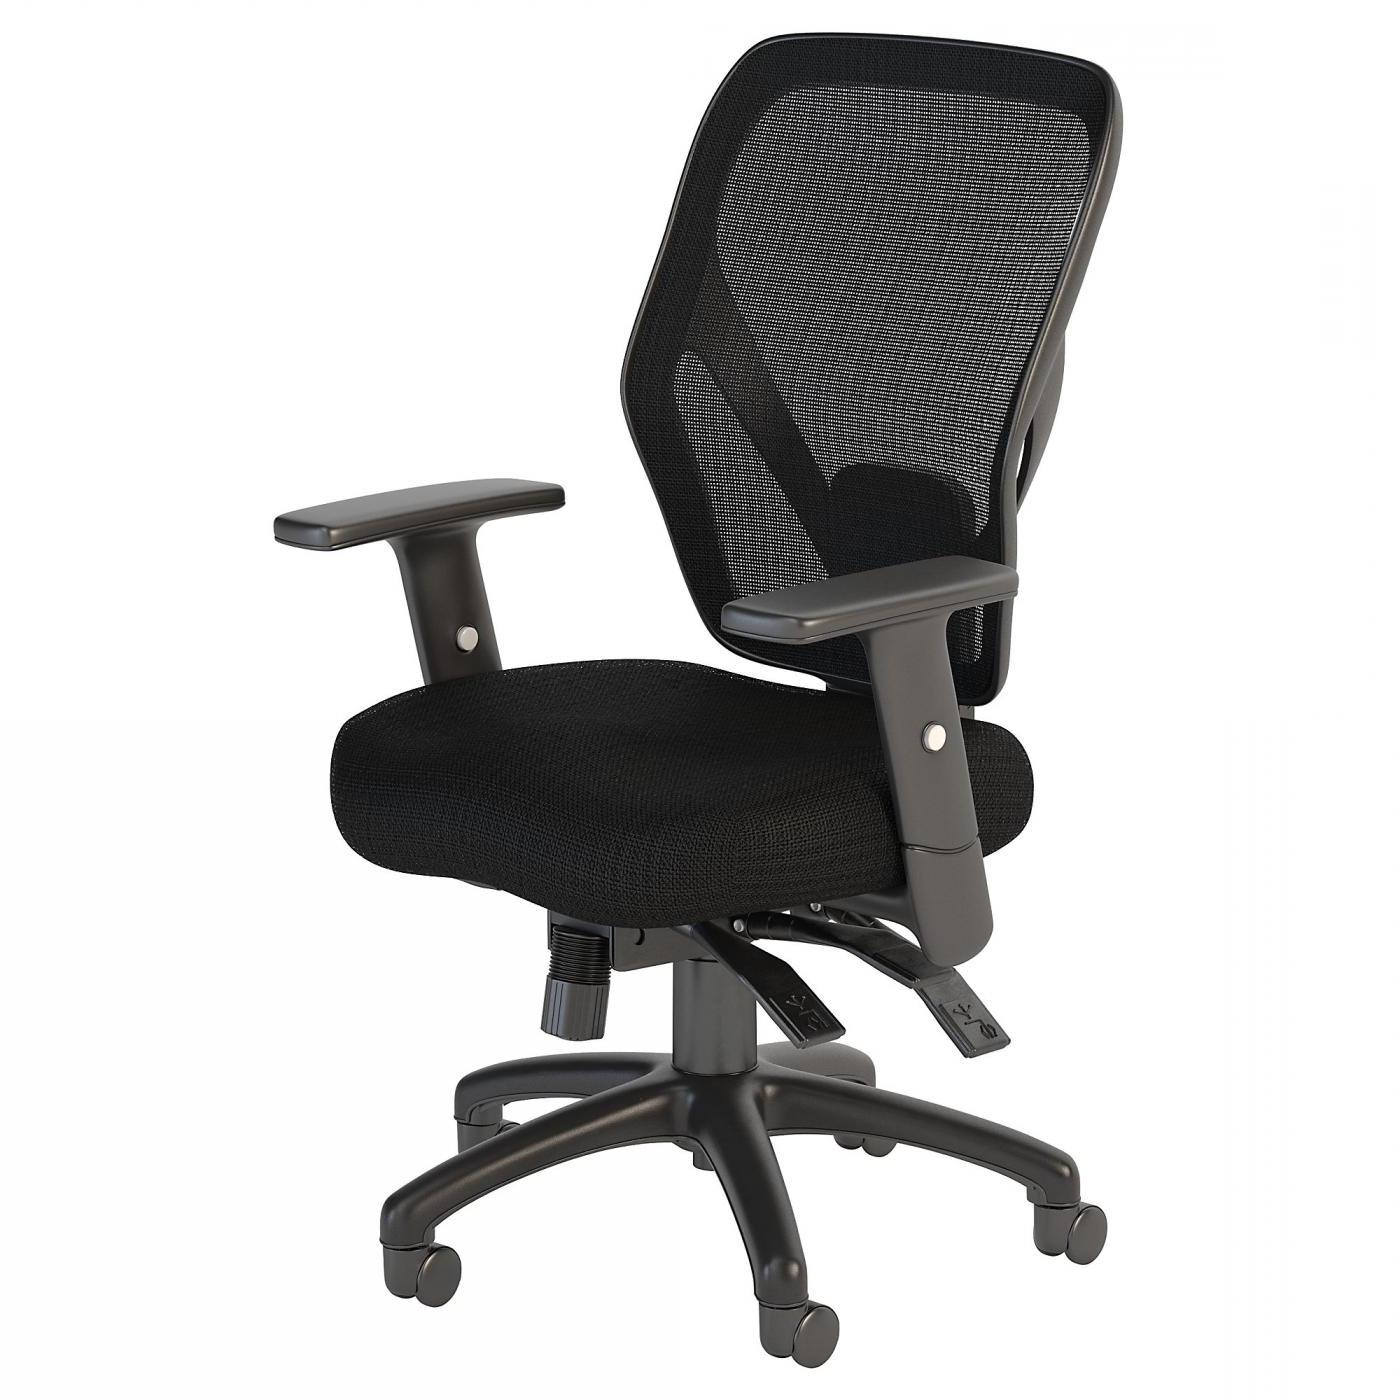 <font color=#c60><b>BUSH BUSINESS FURNITURE CORPORATE MID BACK MULTIFUNCTION MESH OFFICE CHAIR. FREE SHIPPING</font></b> </font></b>